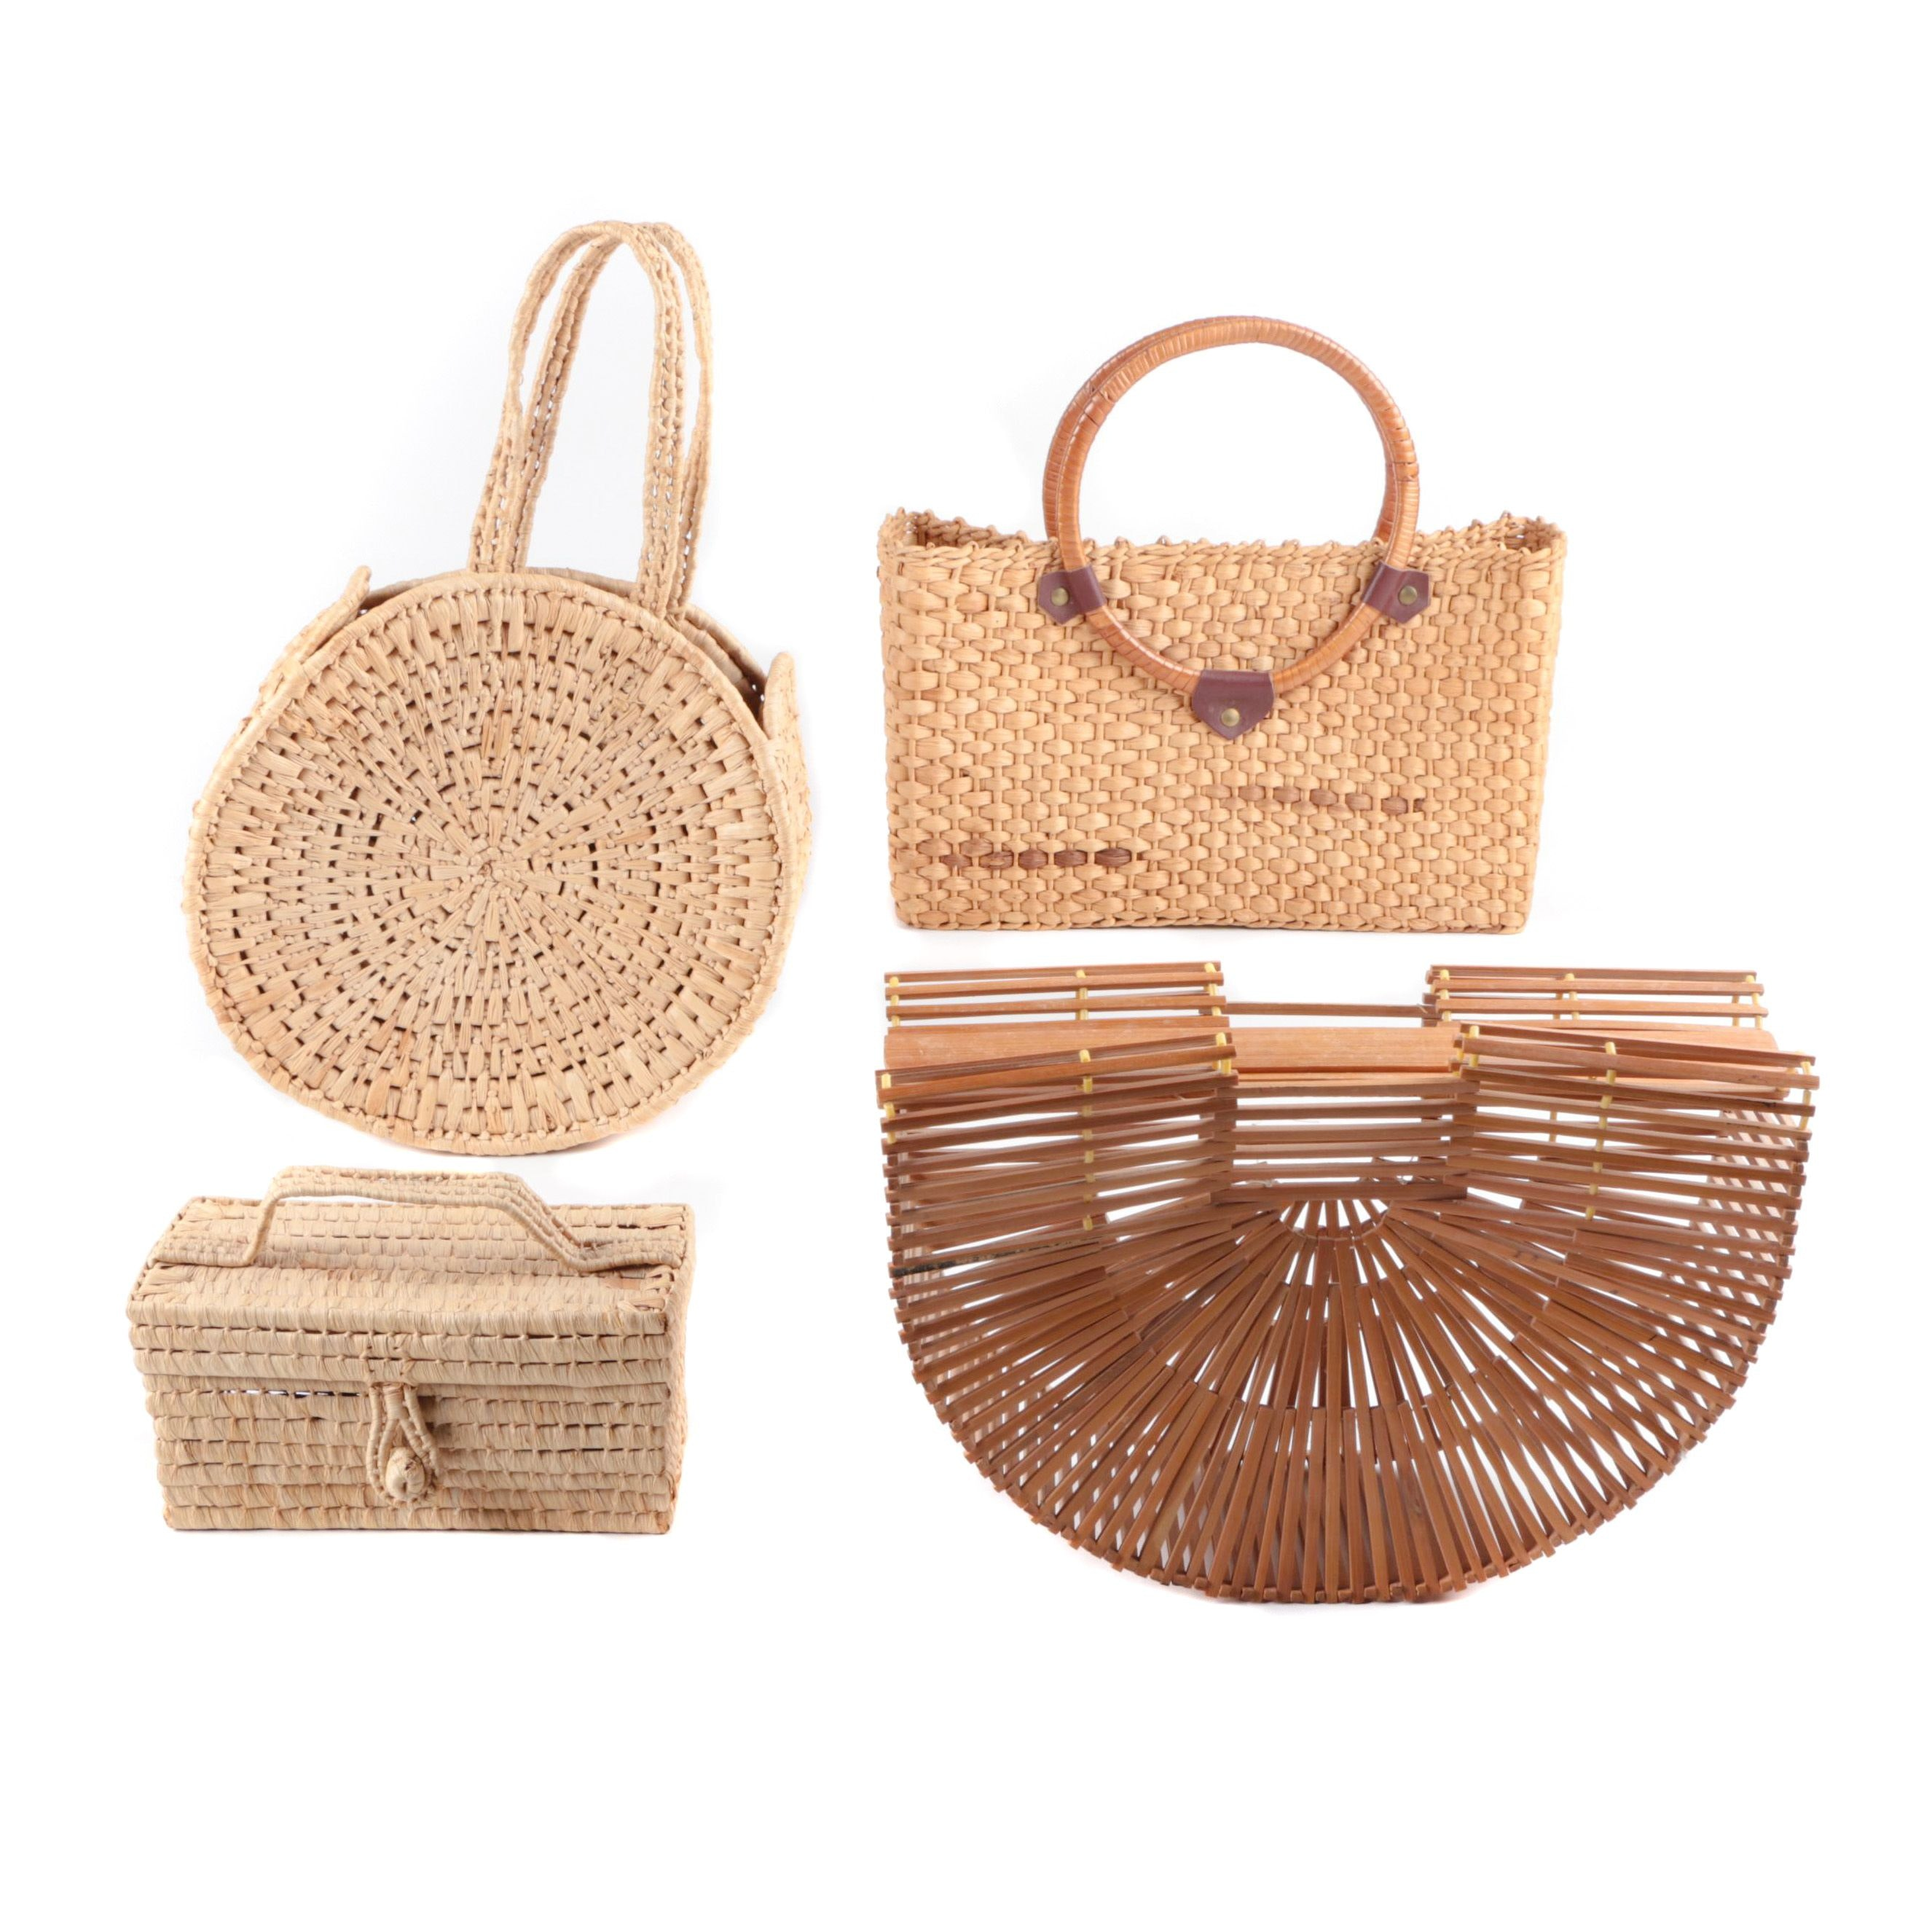 Straw and Wooden Handbags